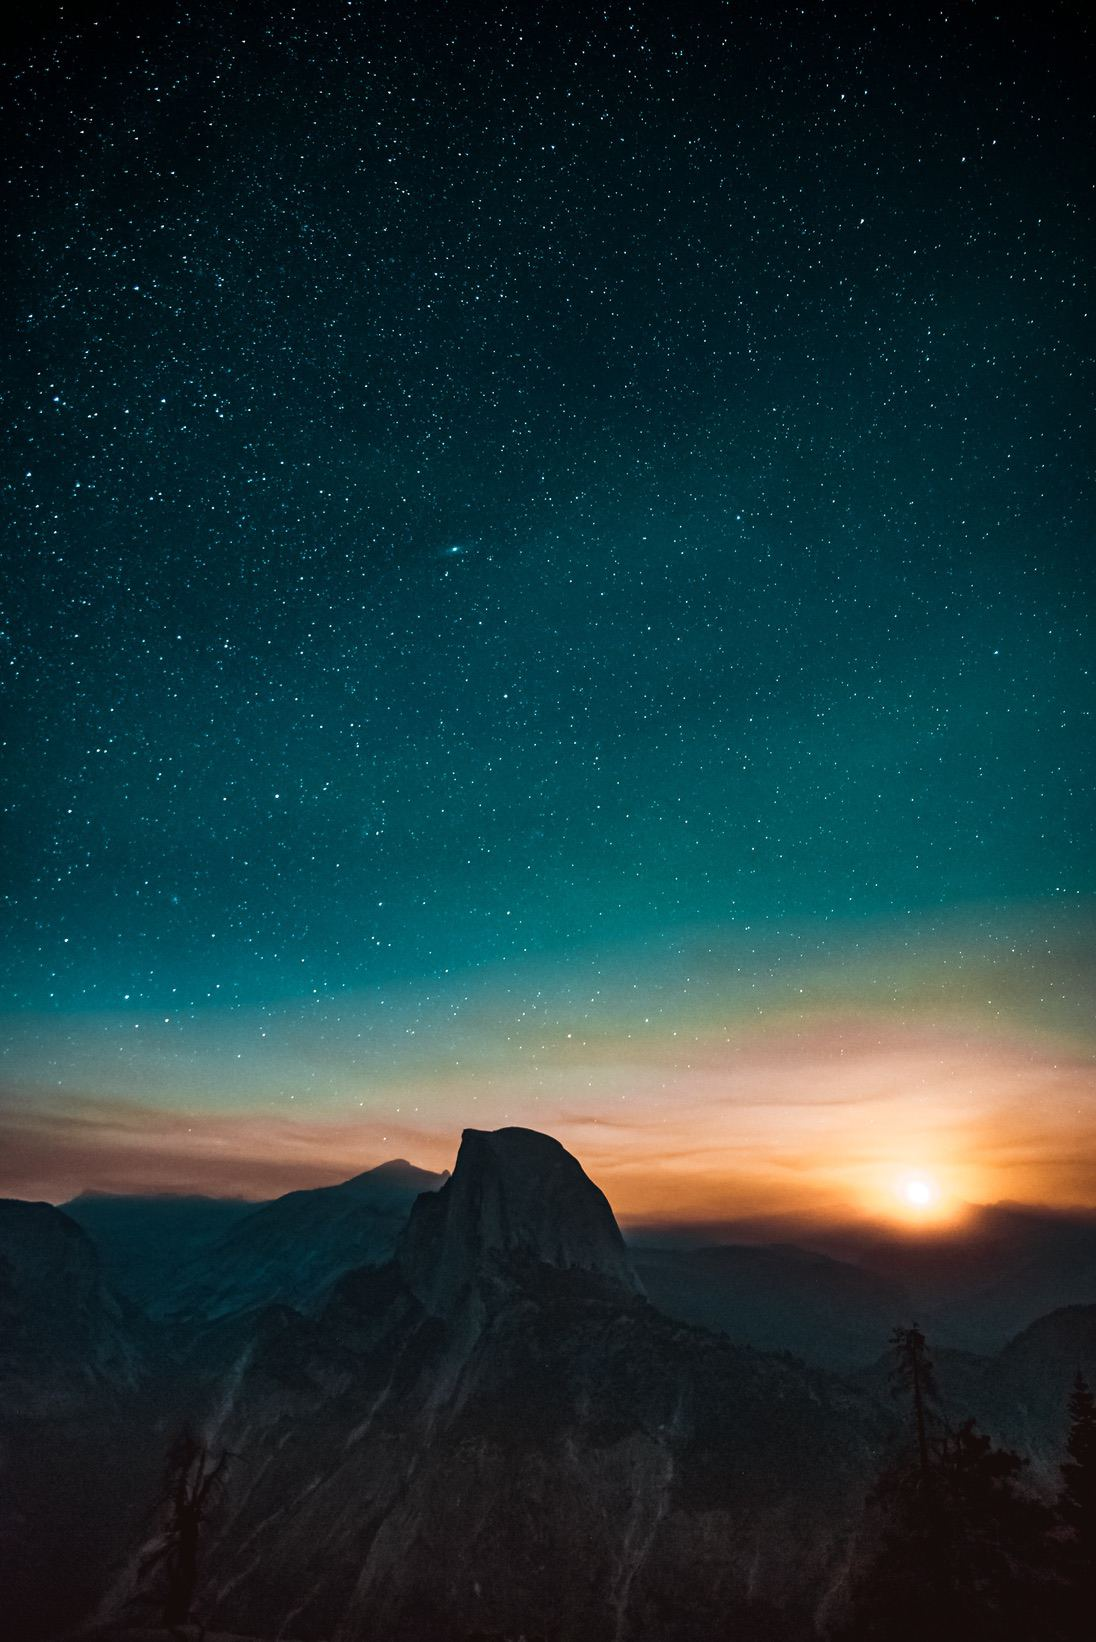 Mountain wallpaper with night sky